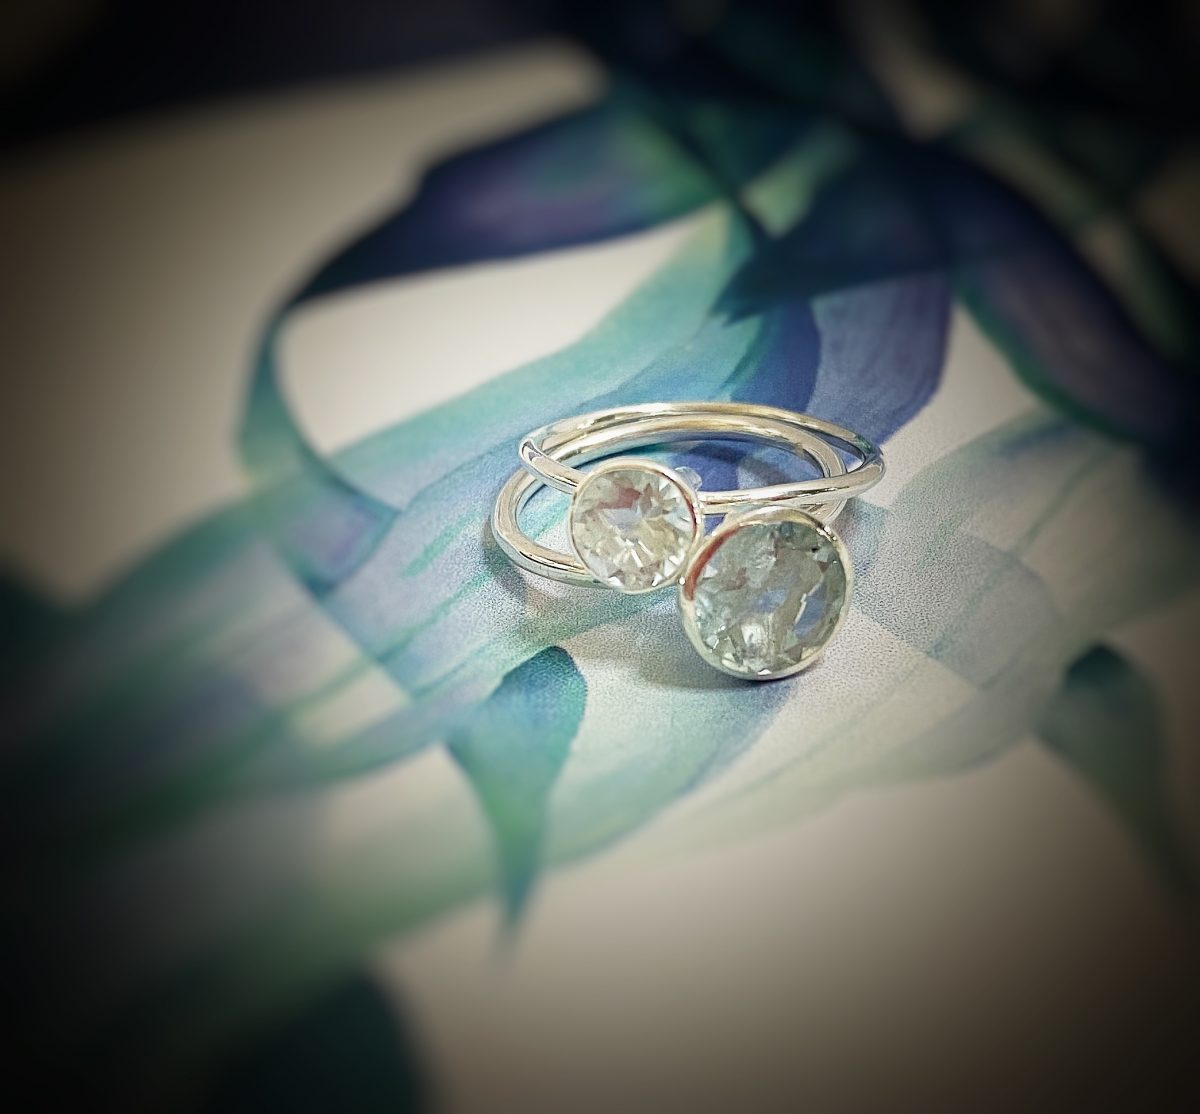 Aquamarine Gem Candy ring 8mm and 6 mm stacking rings.